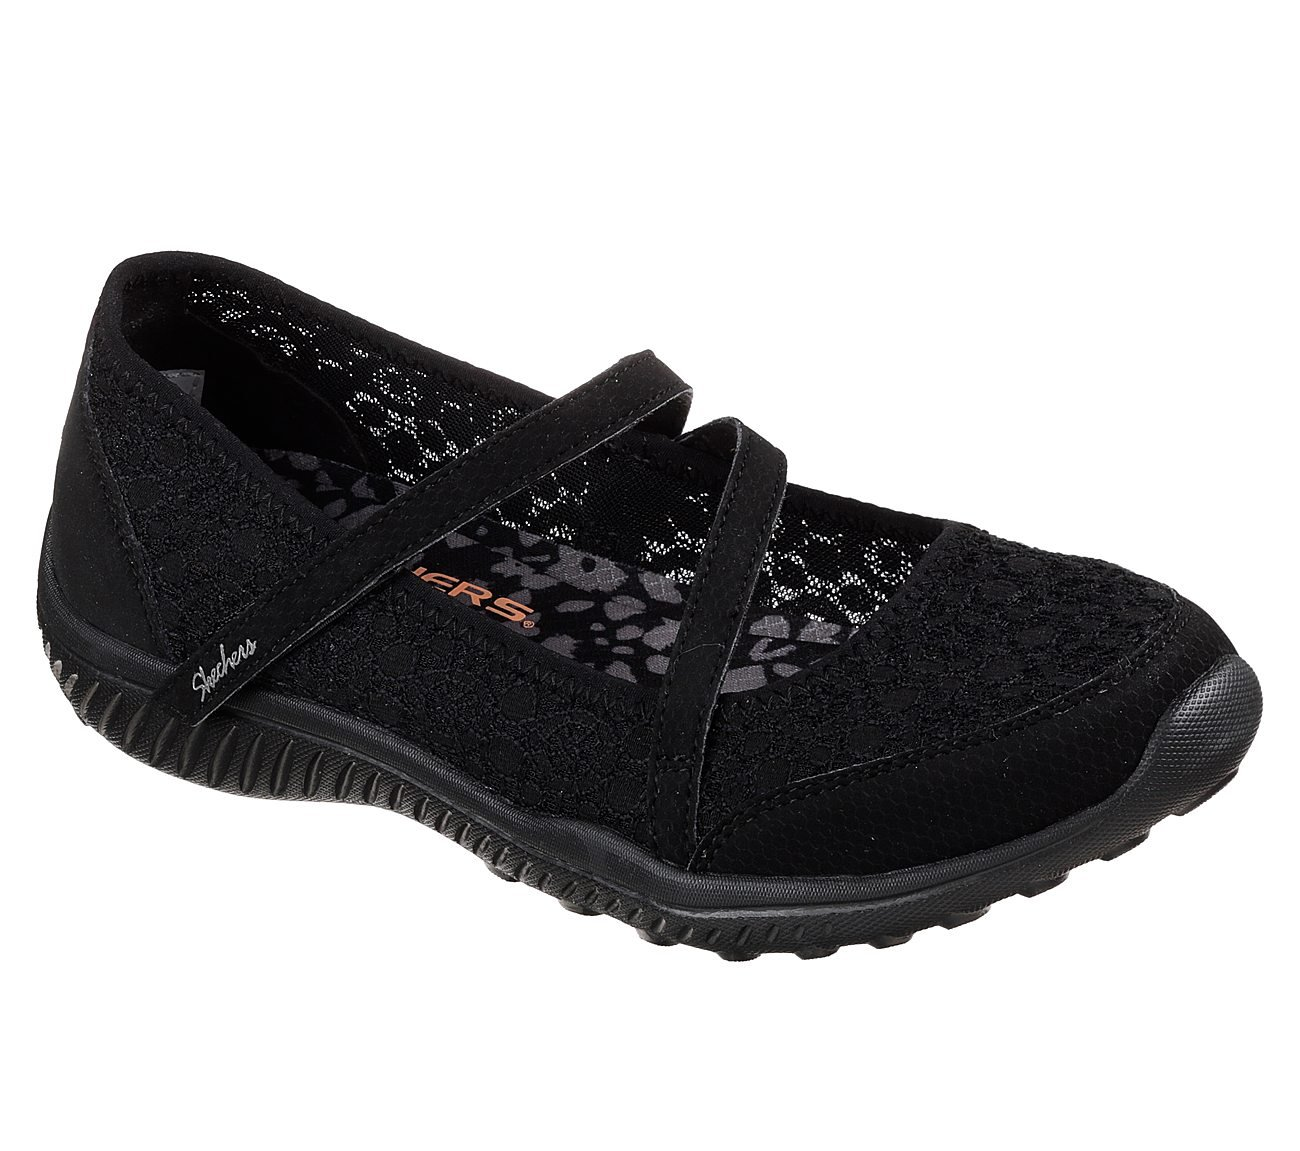 Skechers Be-Light Florescent Womens Mary Jane Sneakers B07DNGSXLY 5.5 B(M) US|Black